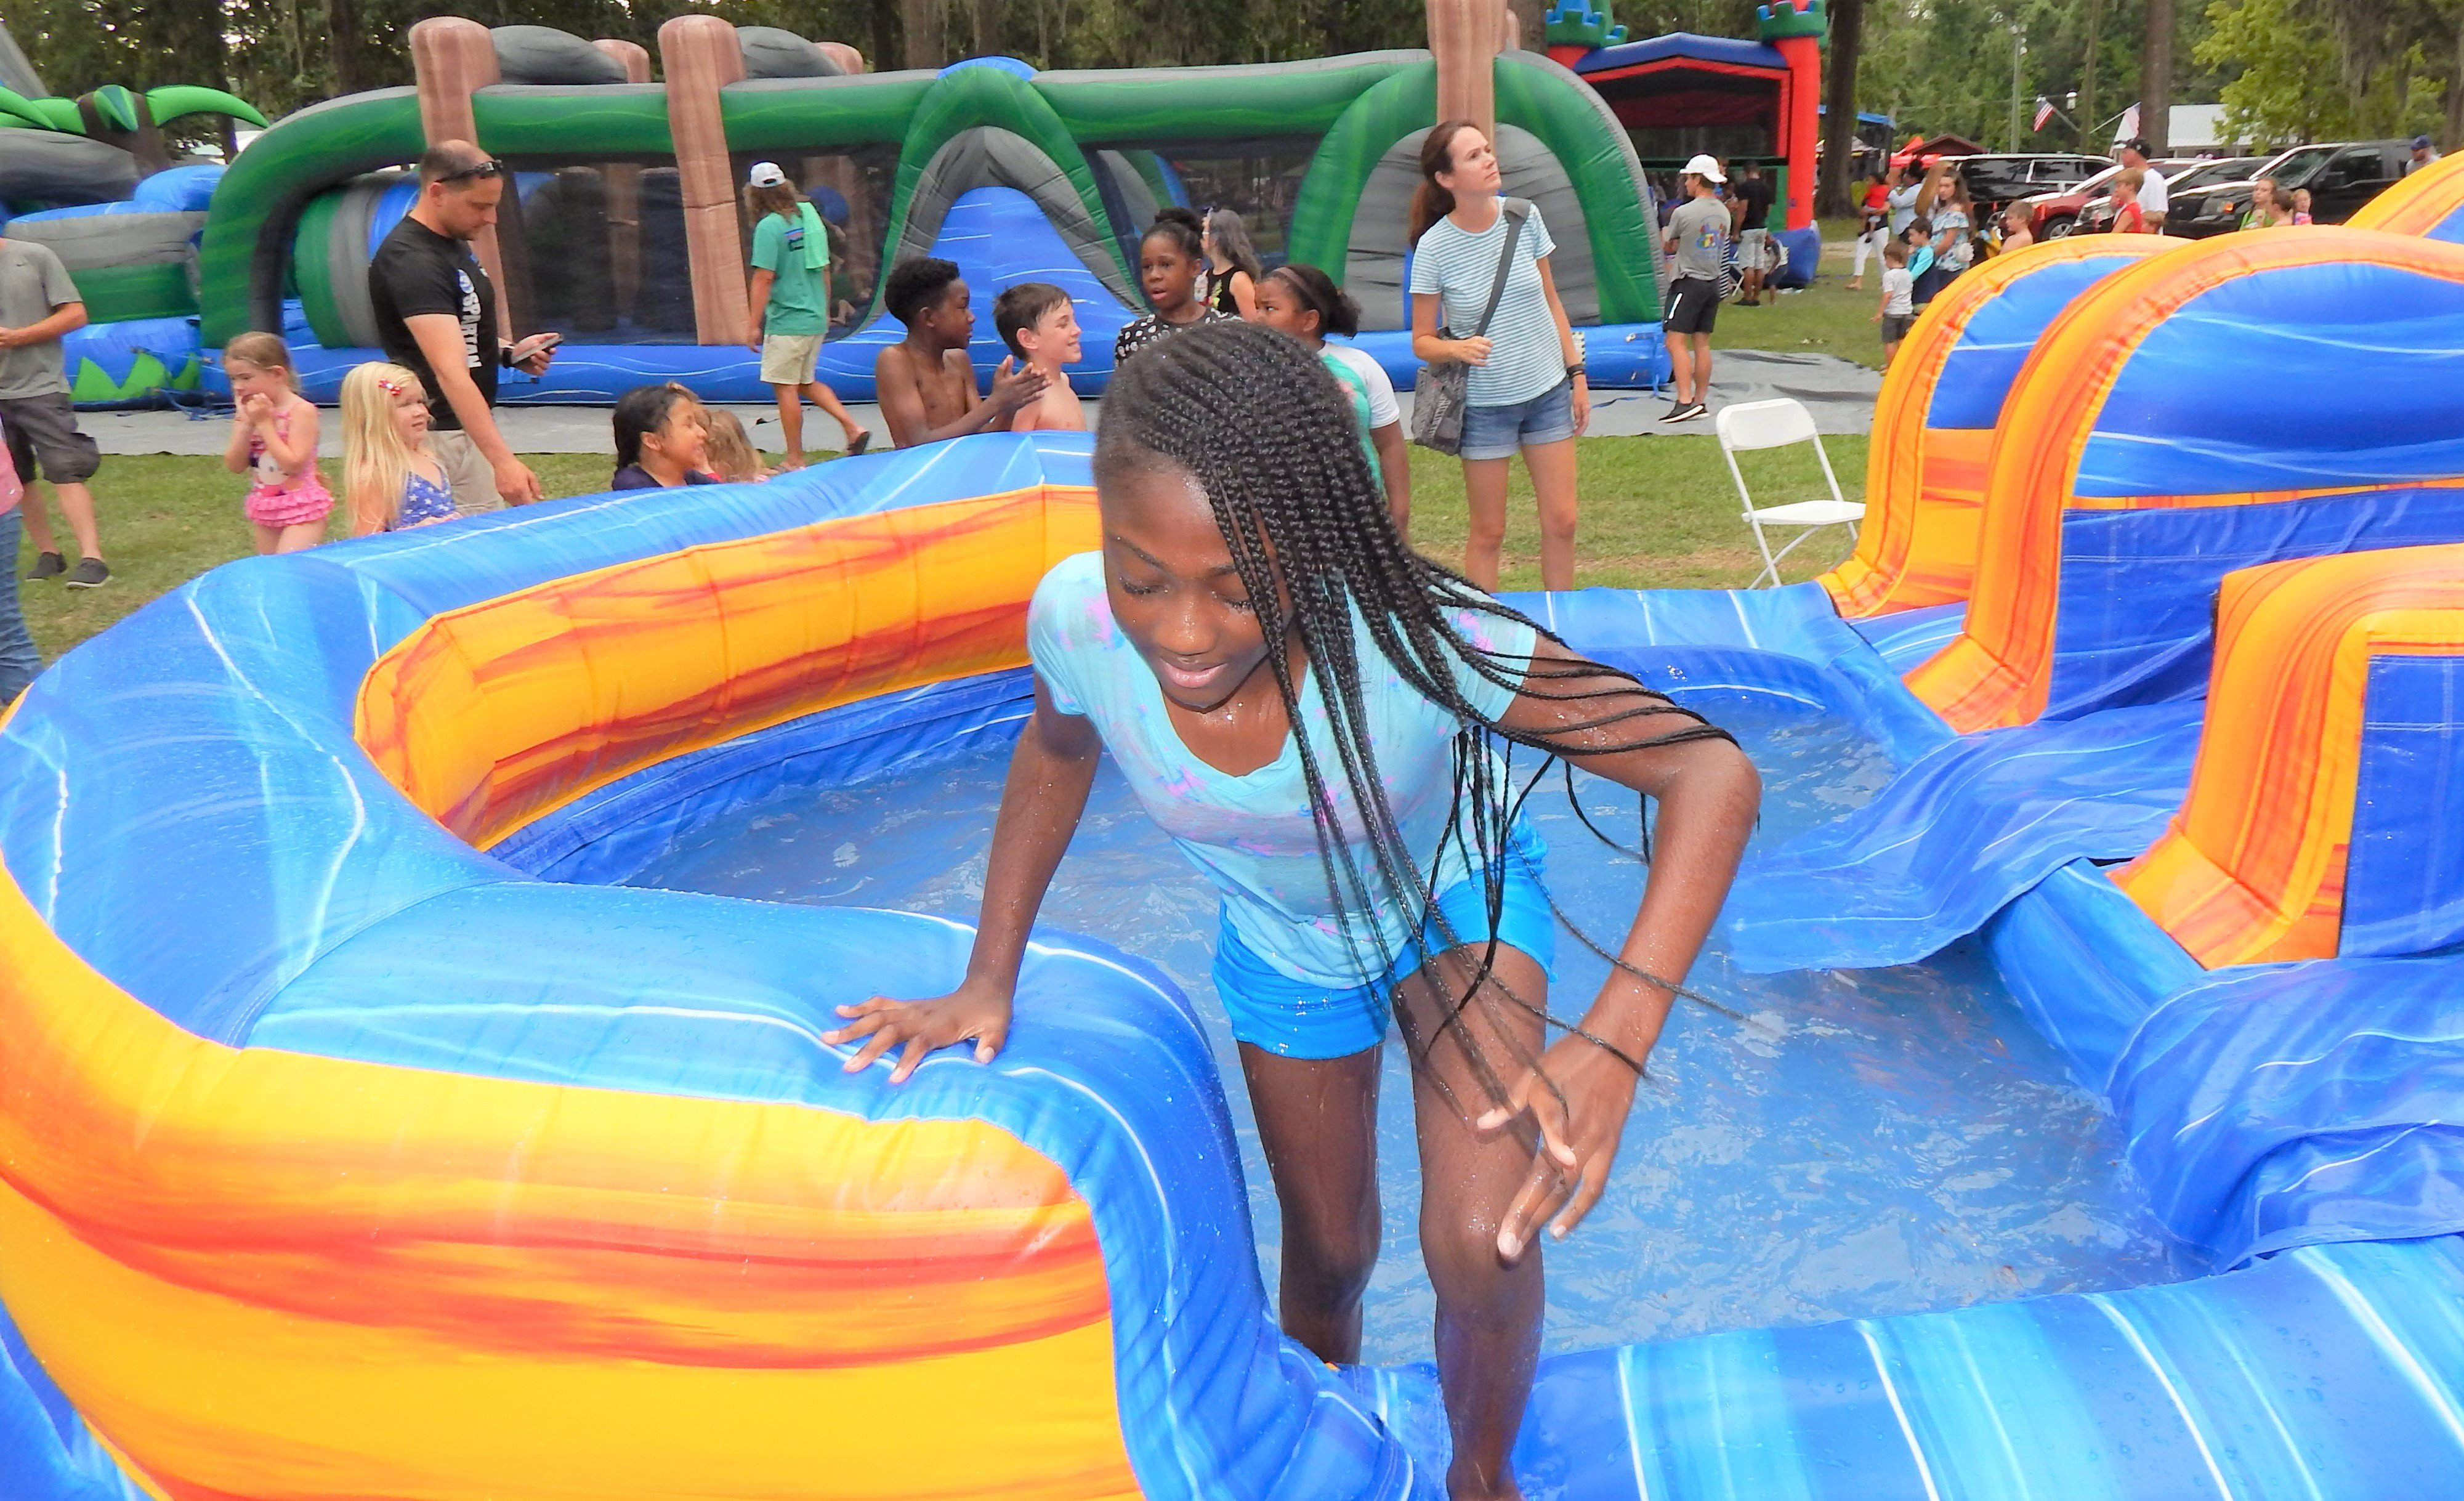 This young girl enjoyed the cool water at the bottom of the slide. Photo by Mark Swendra